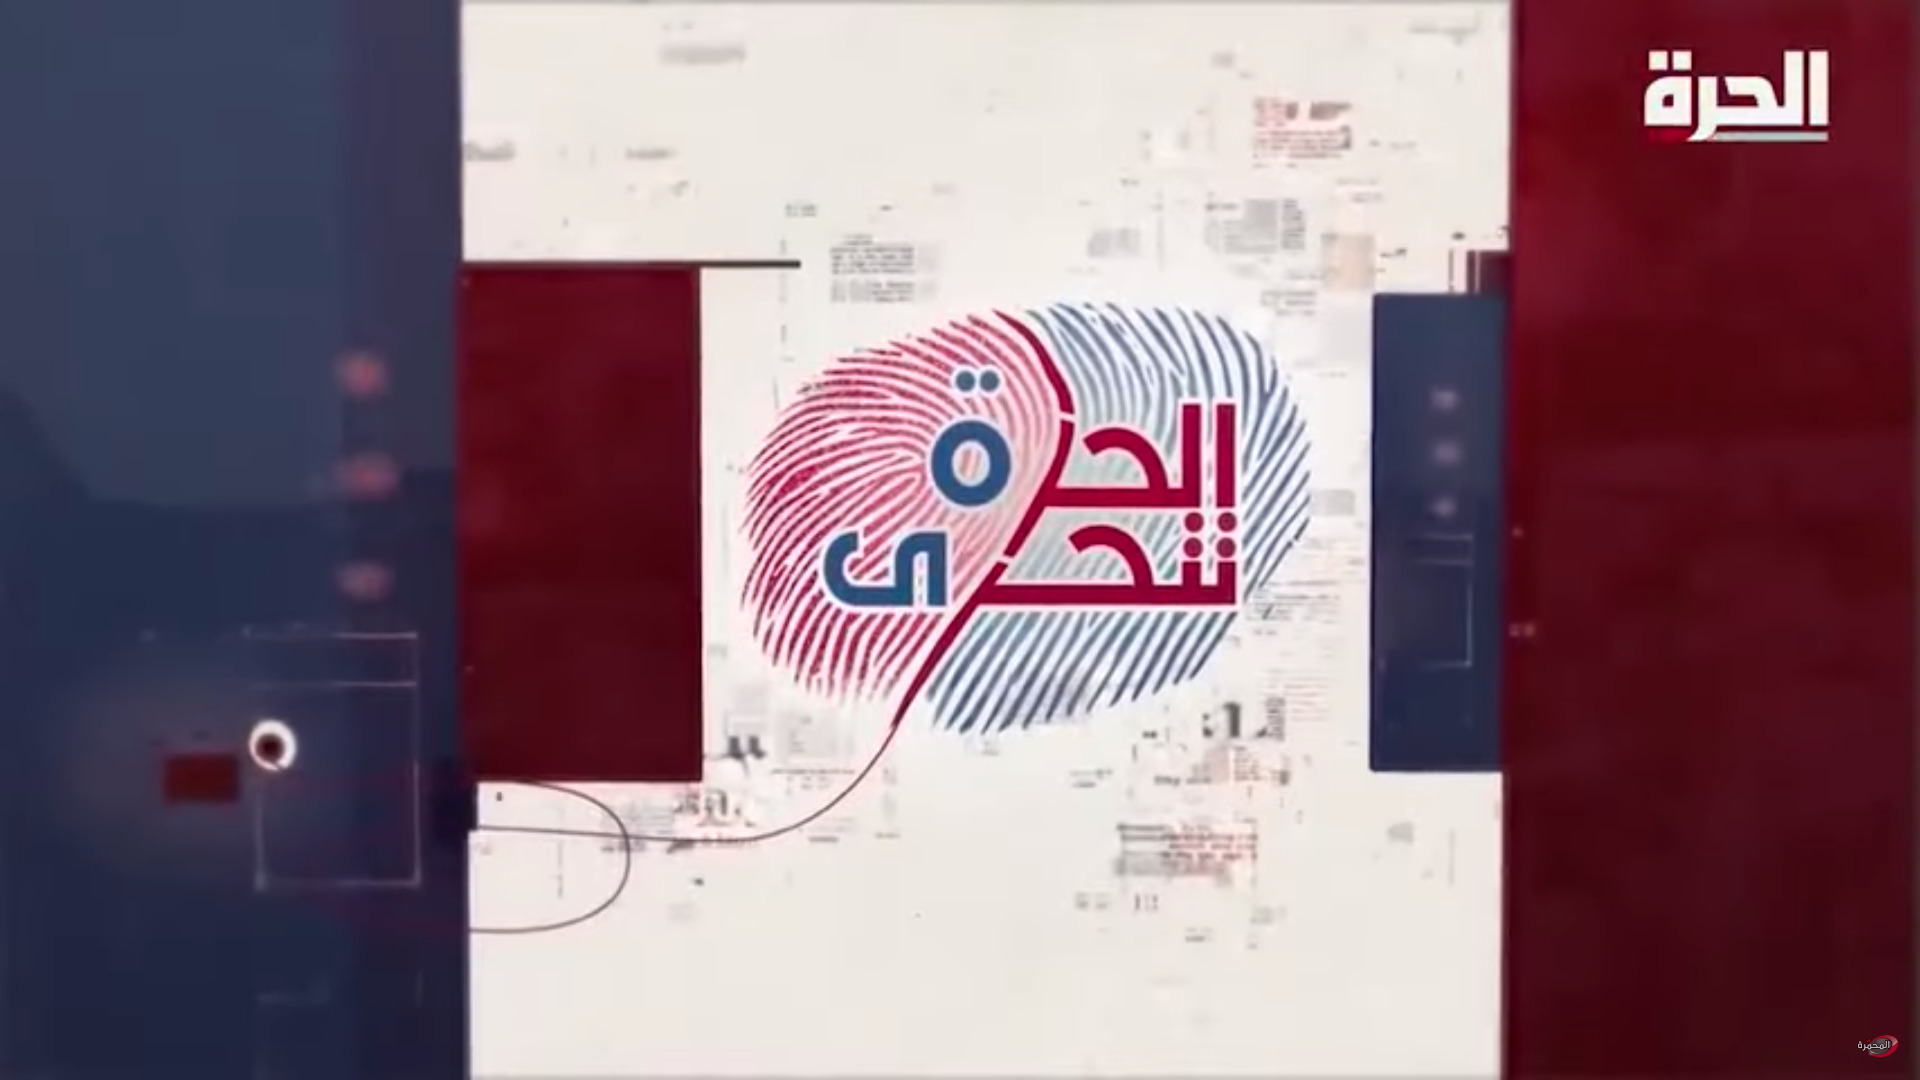 Iraq shuts down TV broadcaster after report on corruption